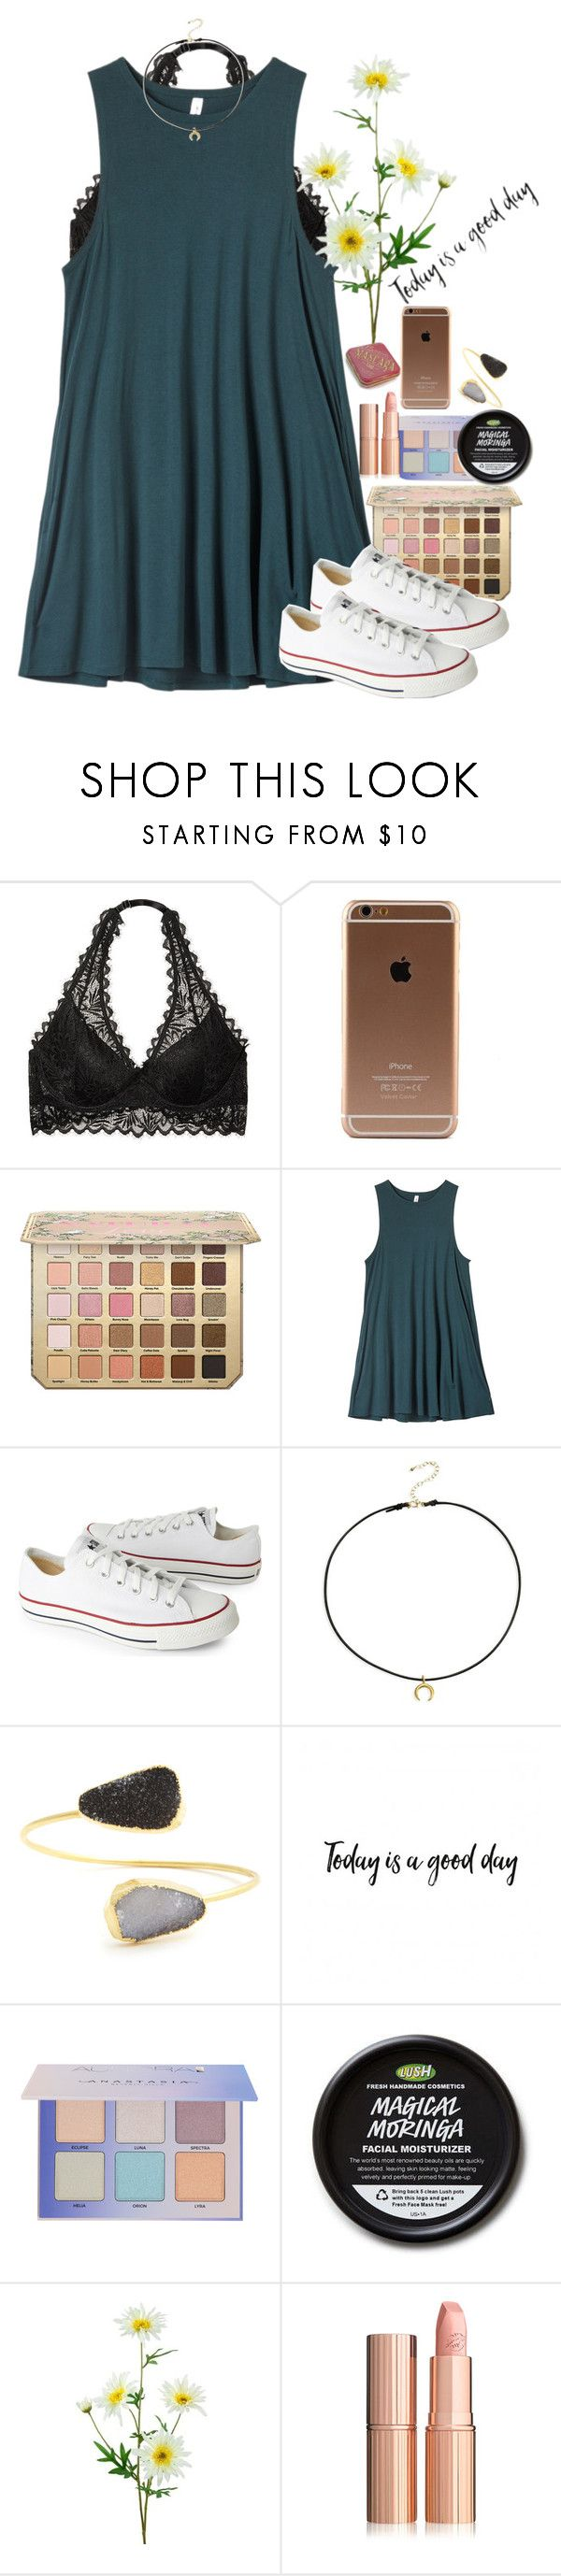 """There was another fight at school today"" by southernstruttin ❤ liked on Polyvore featuring Victoria's Secret, RVCA, Converse, Dogeared and Sole Society"